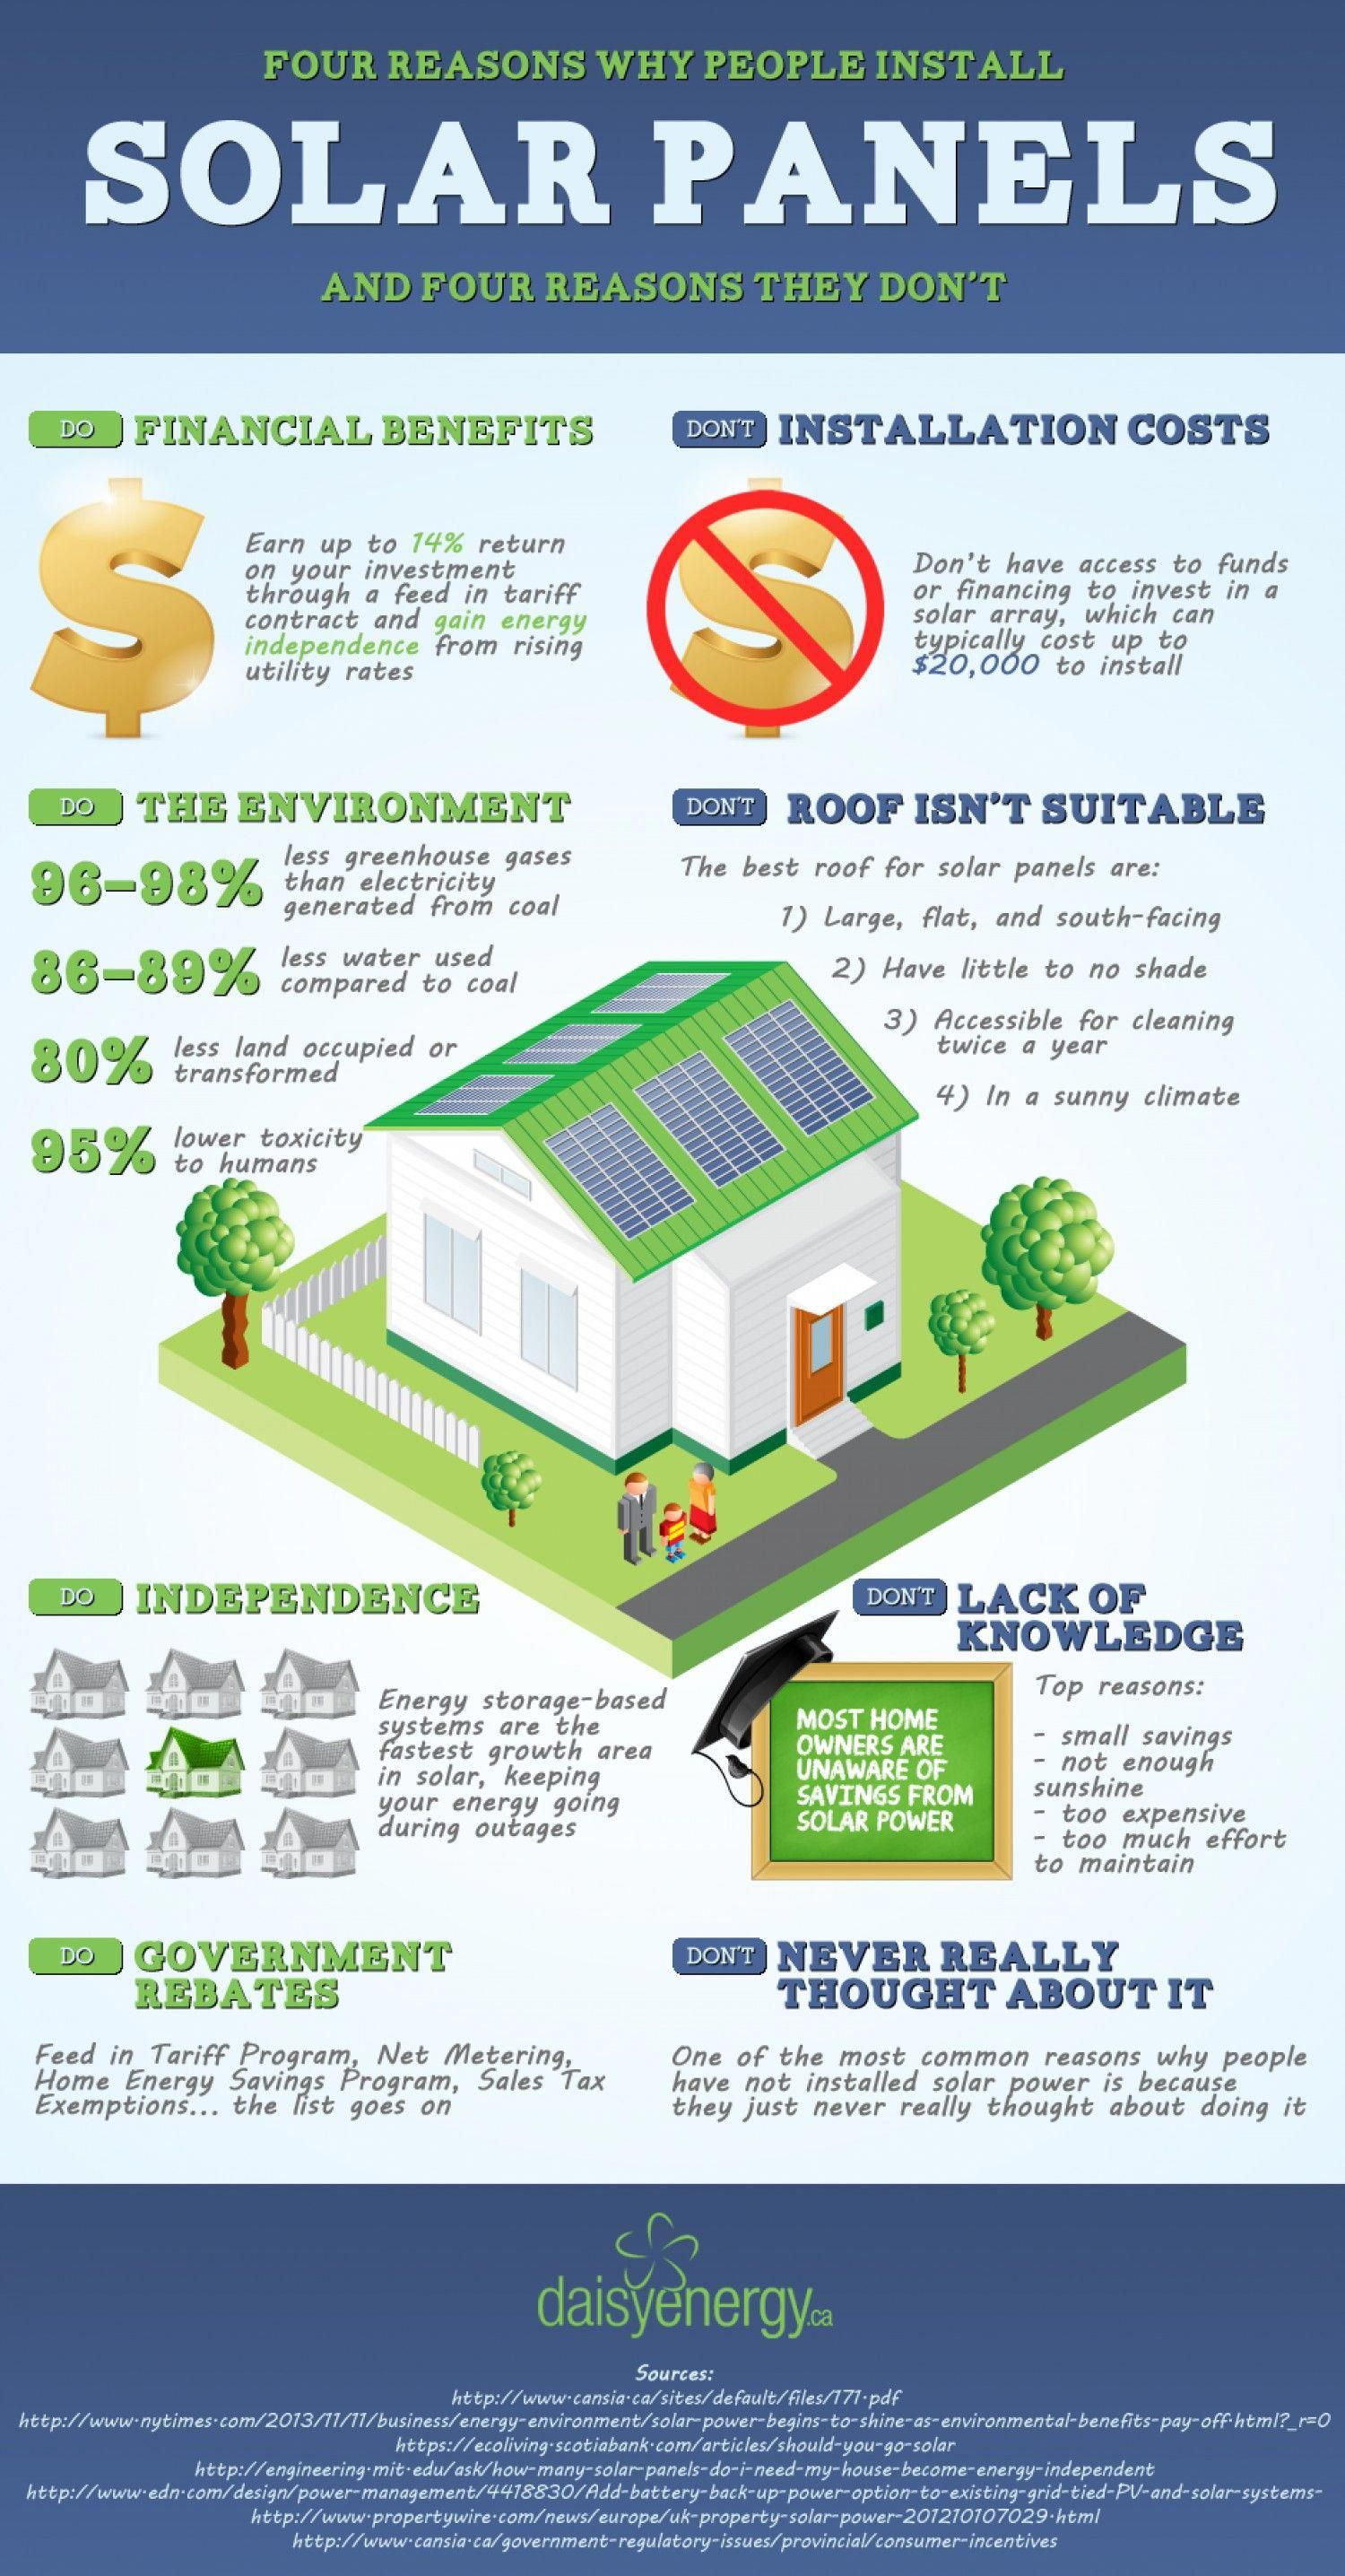 4 Reasons Why People Install Solar Panels And 4 Reasons Why They Don T Infographic Solar In 2020 Solar Panel Installation Solar Projects Energy Efficient Homes